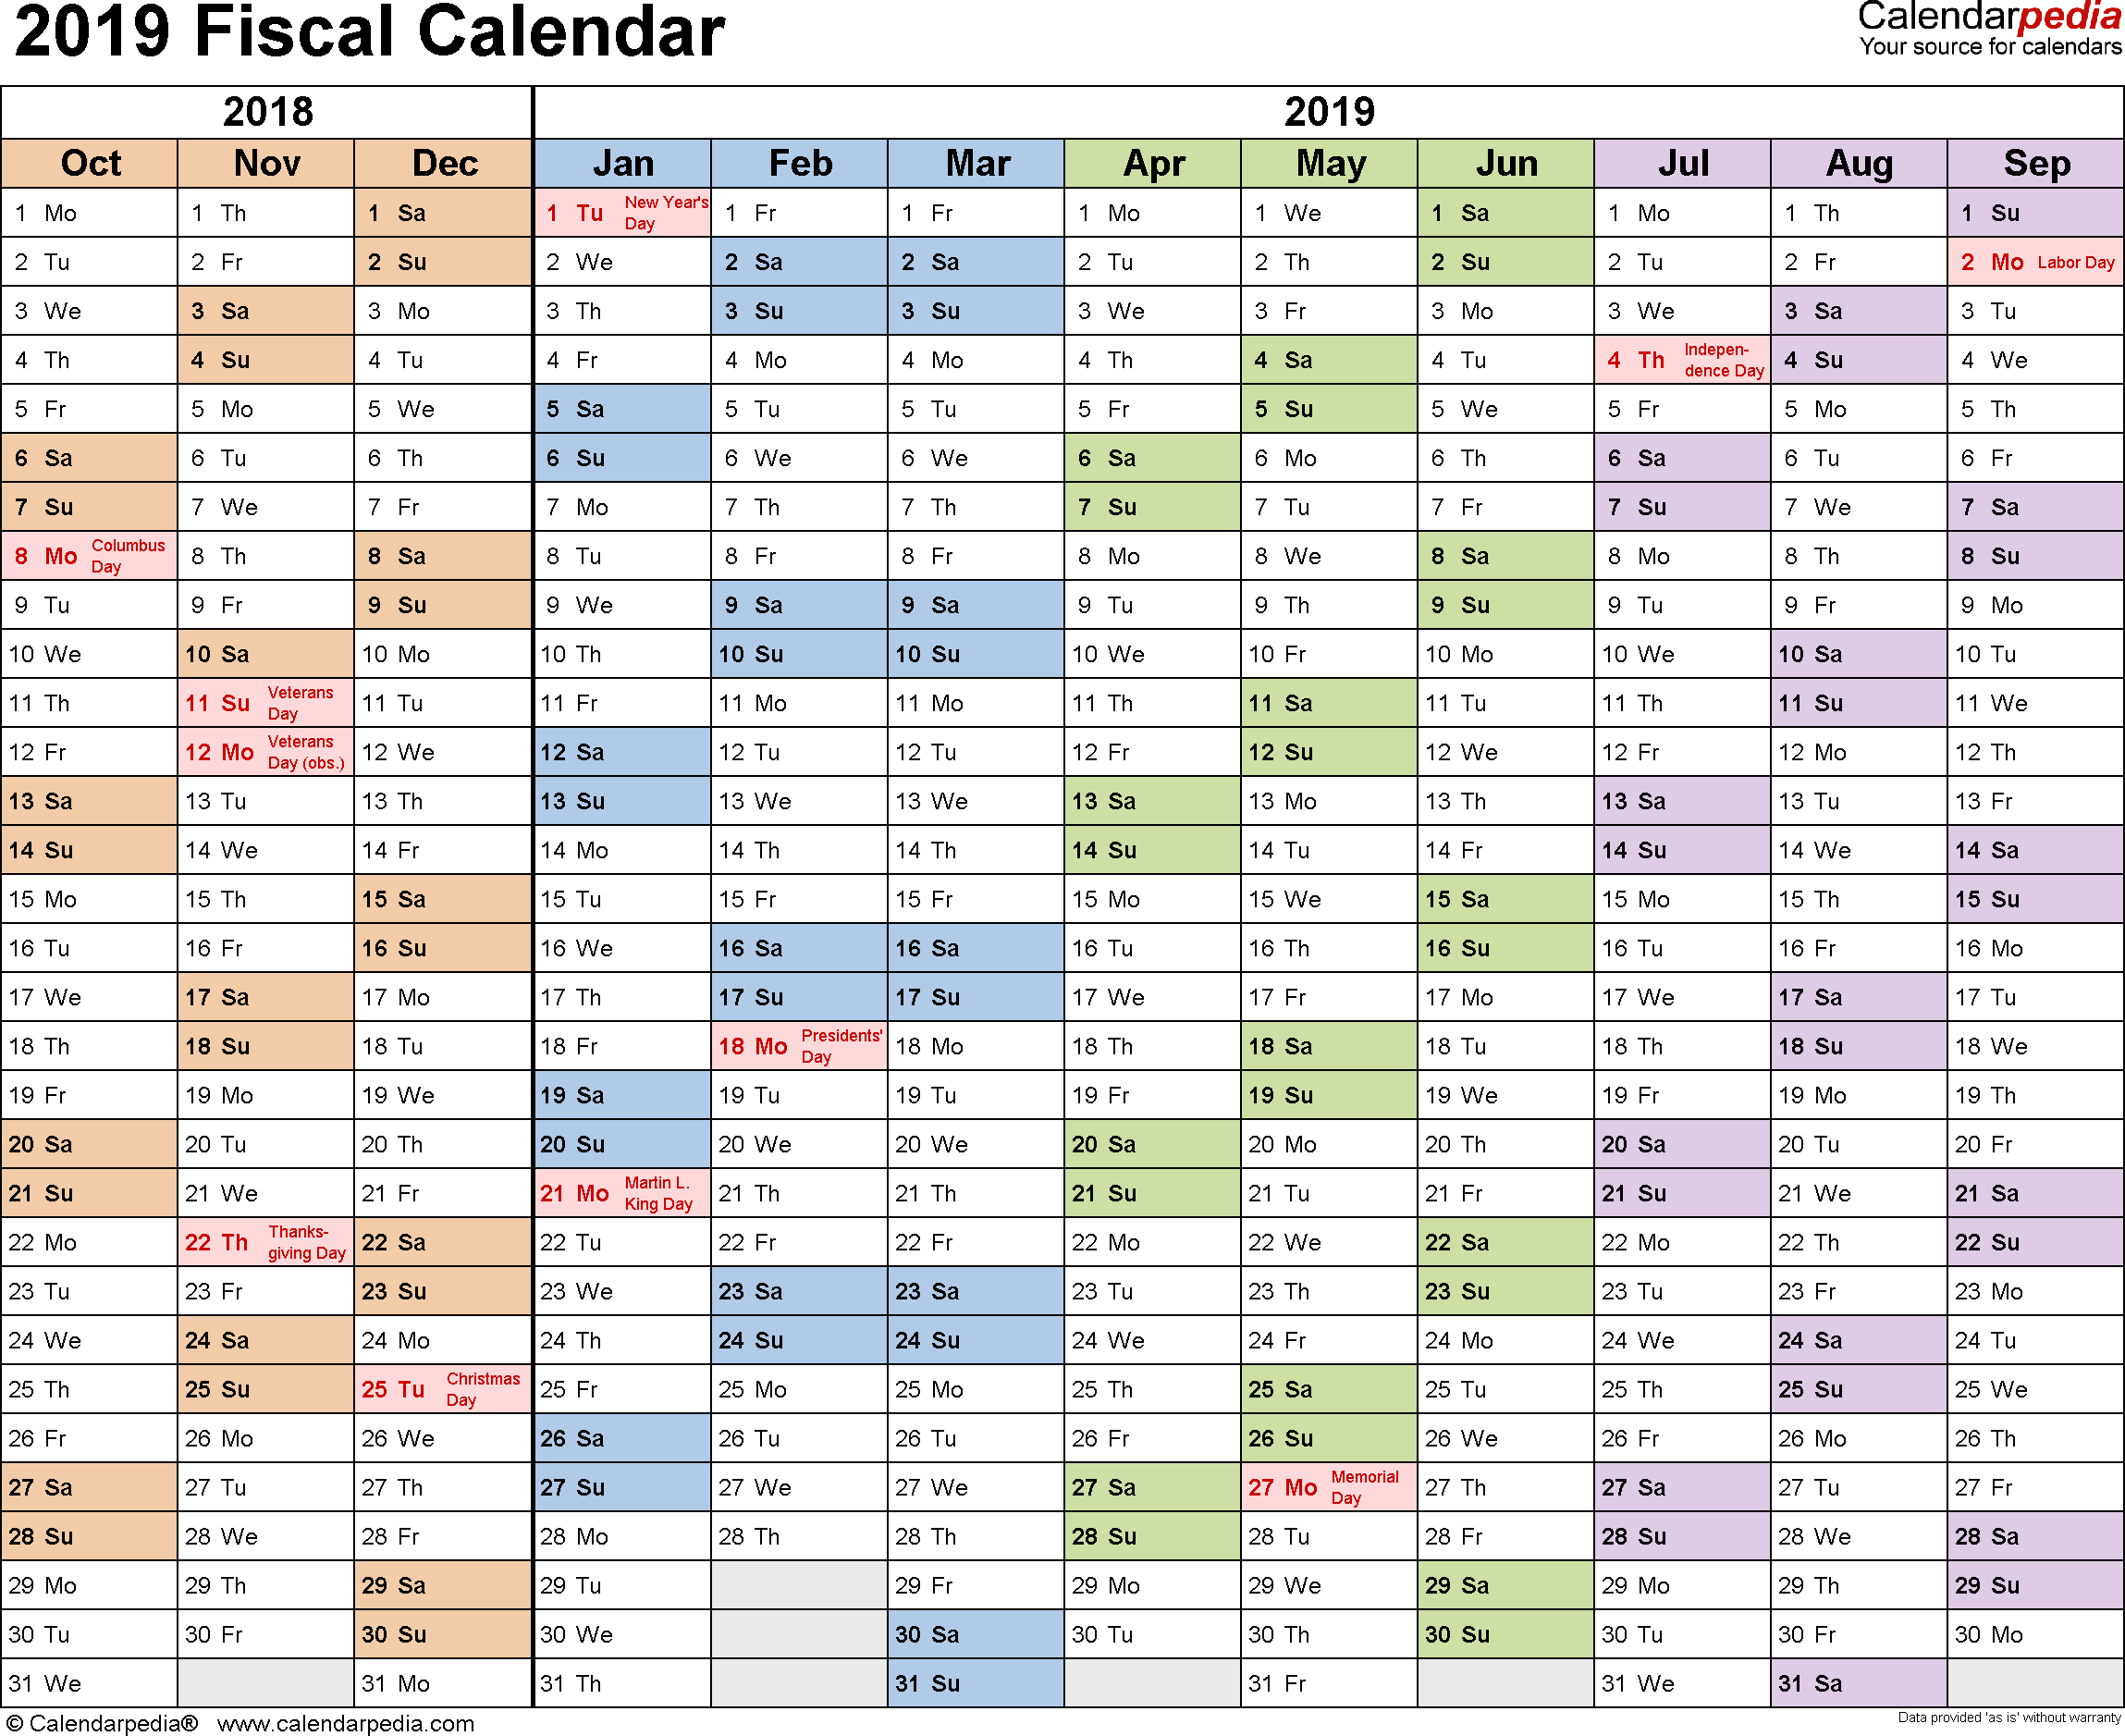 Fiscal calendars 2019 as free printable Word templates